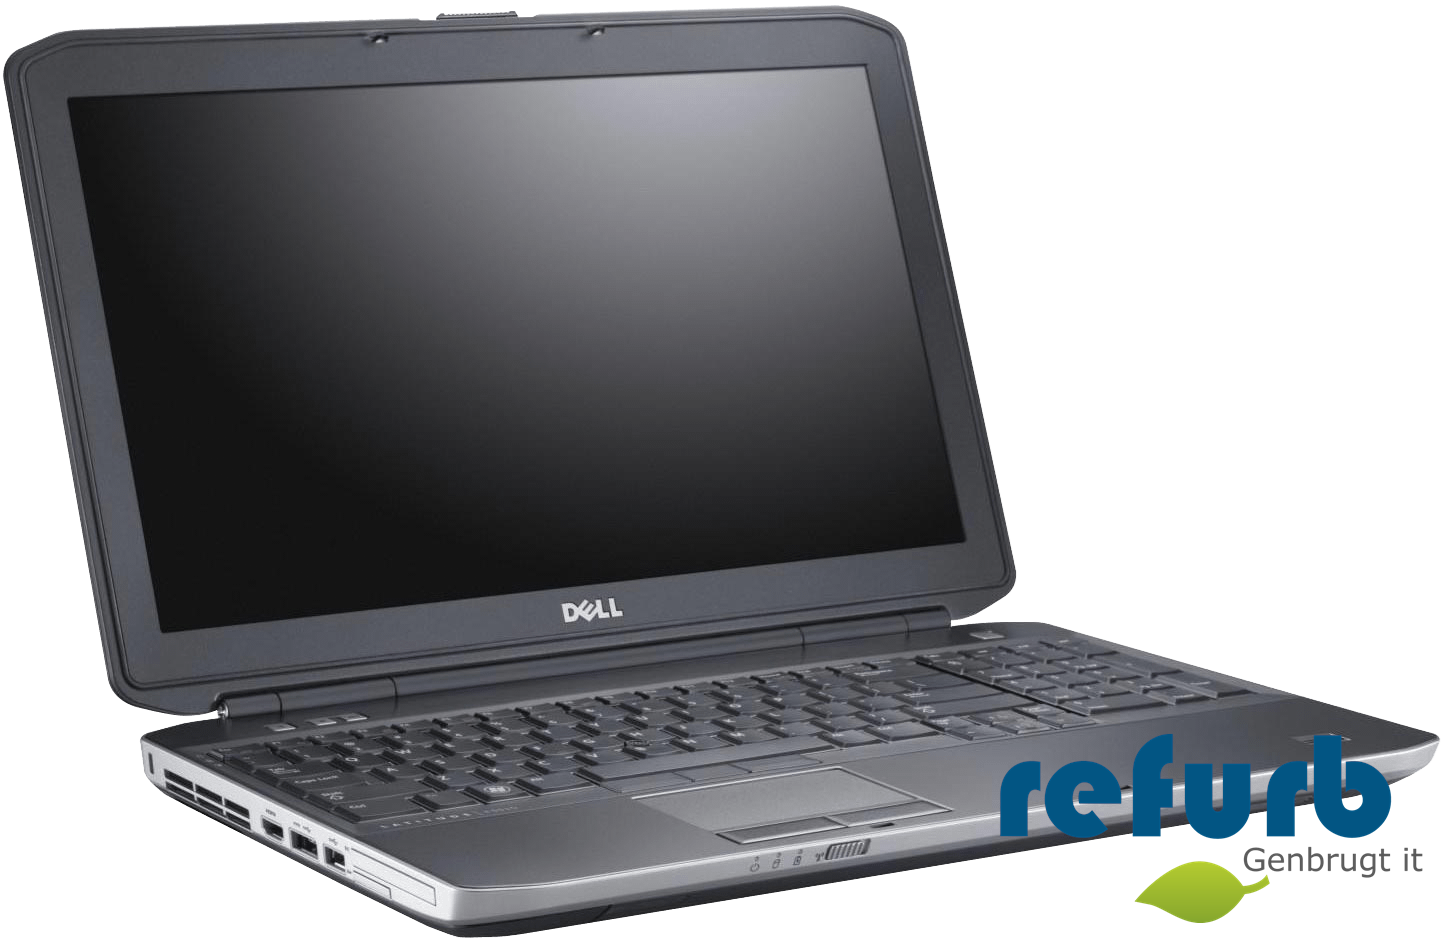 Dell – Dell latitude e5530 fra refurb